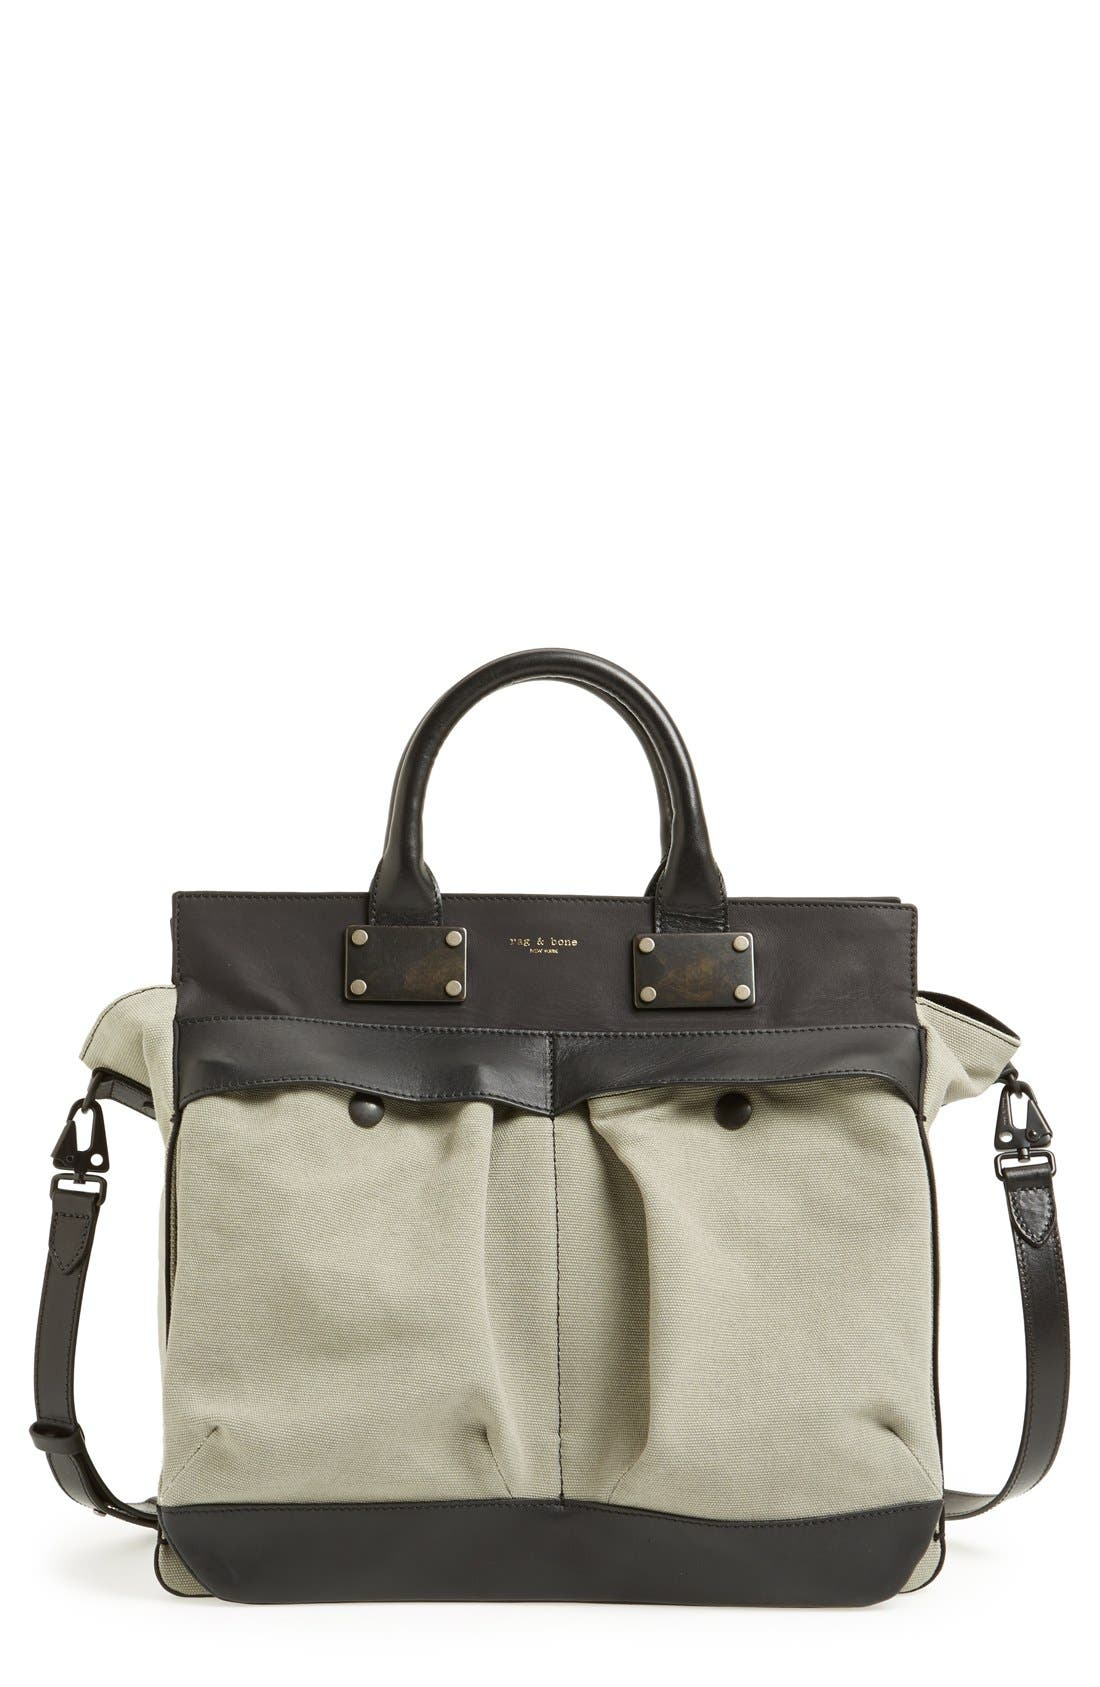 Alternate Image 1 Selected - rag & bone 'Large Pilot' Canvas Satchel